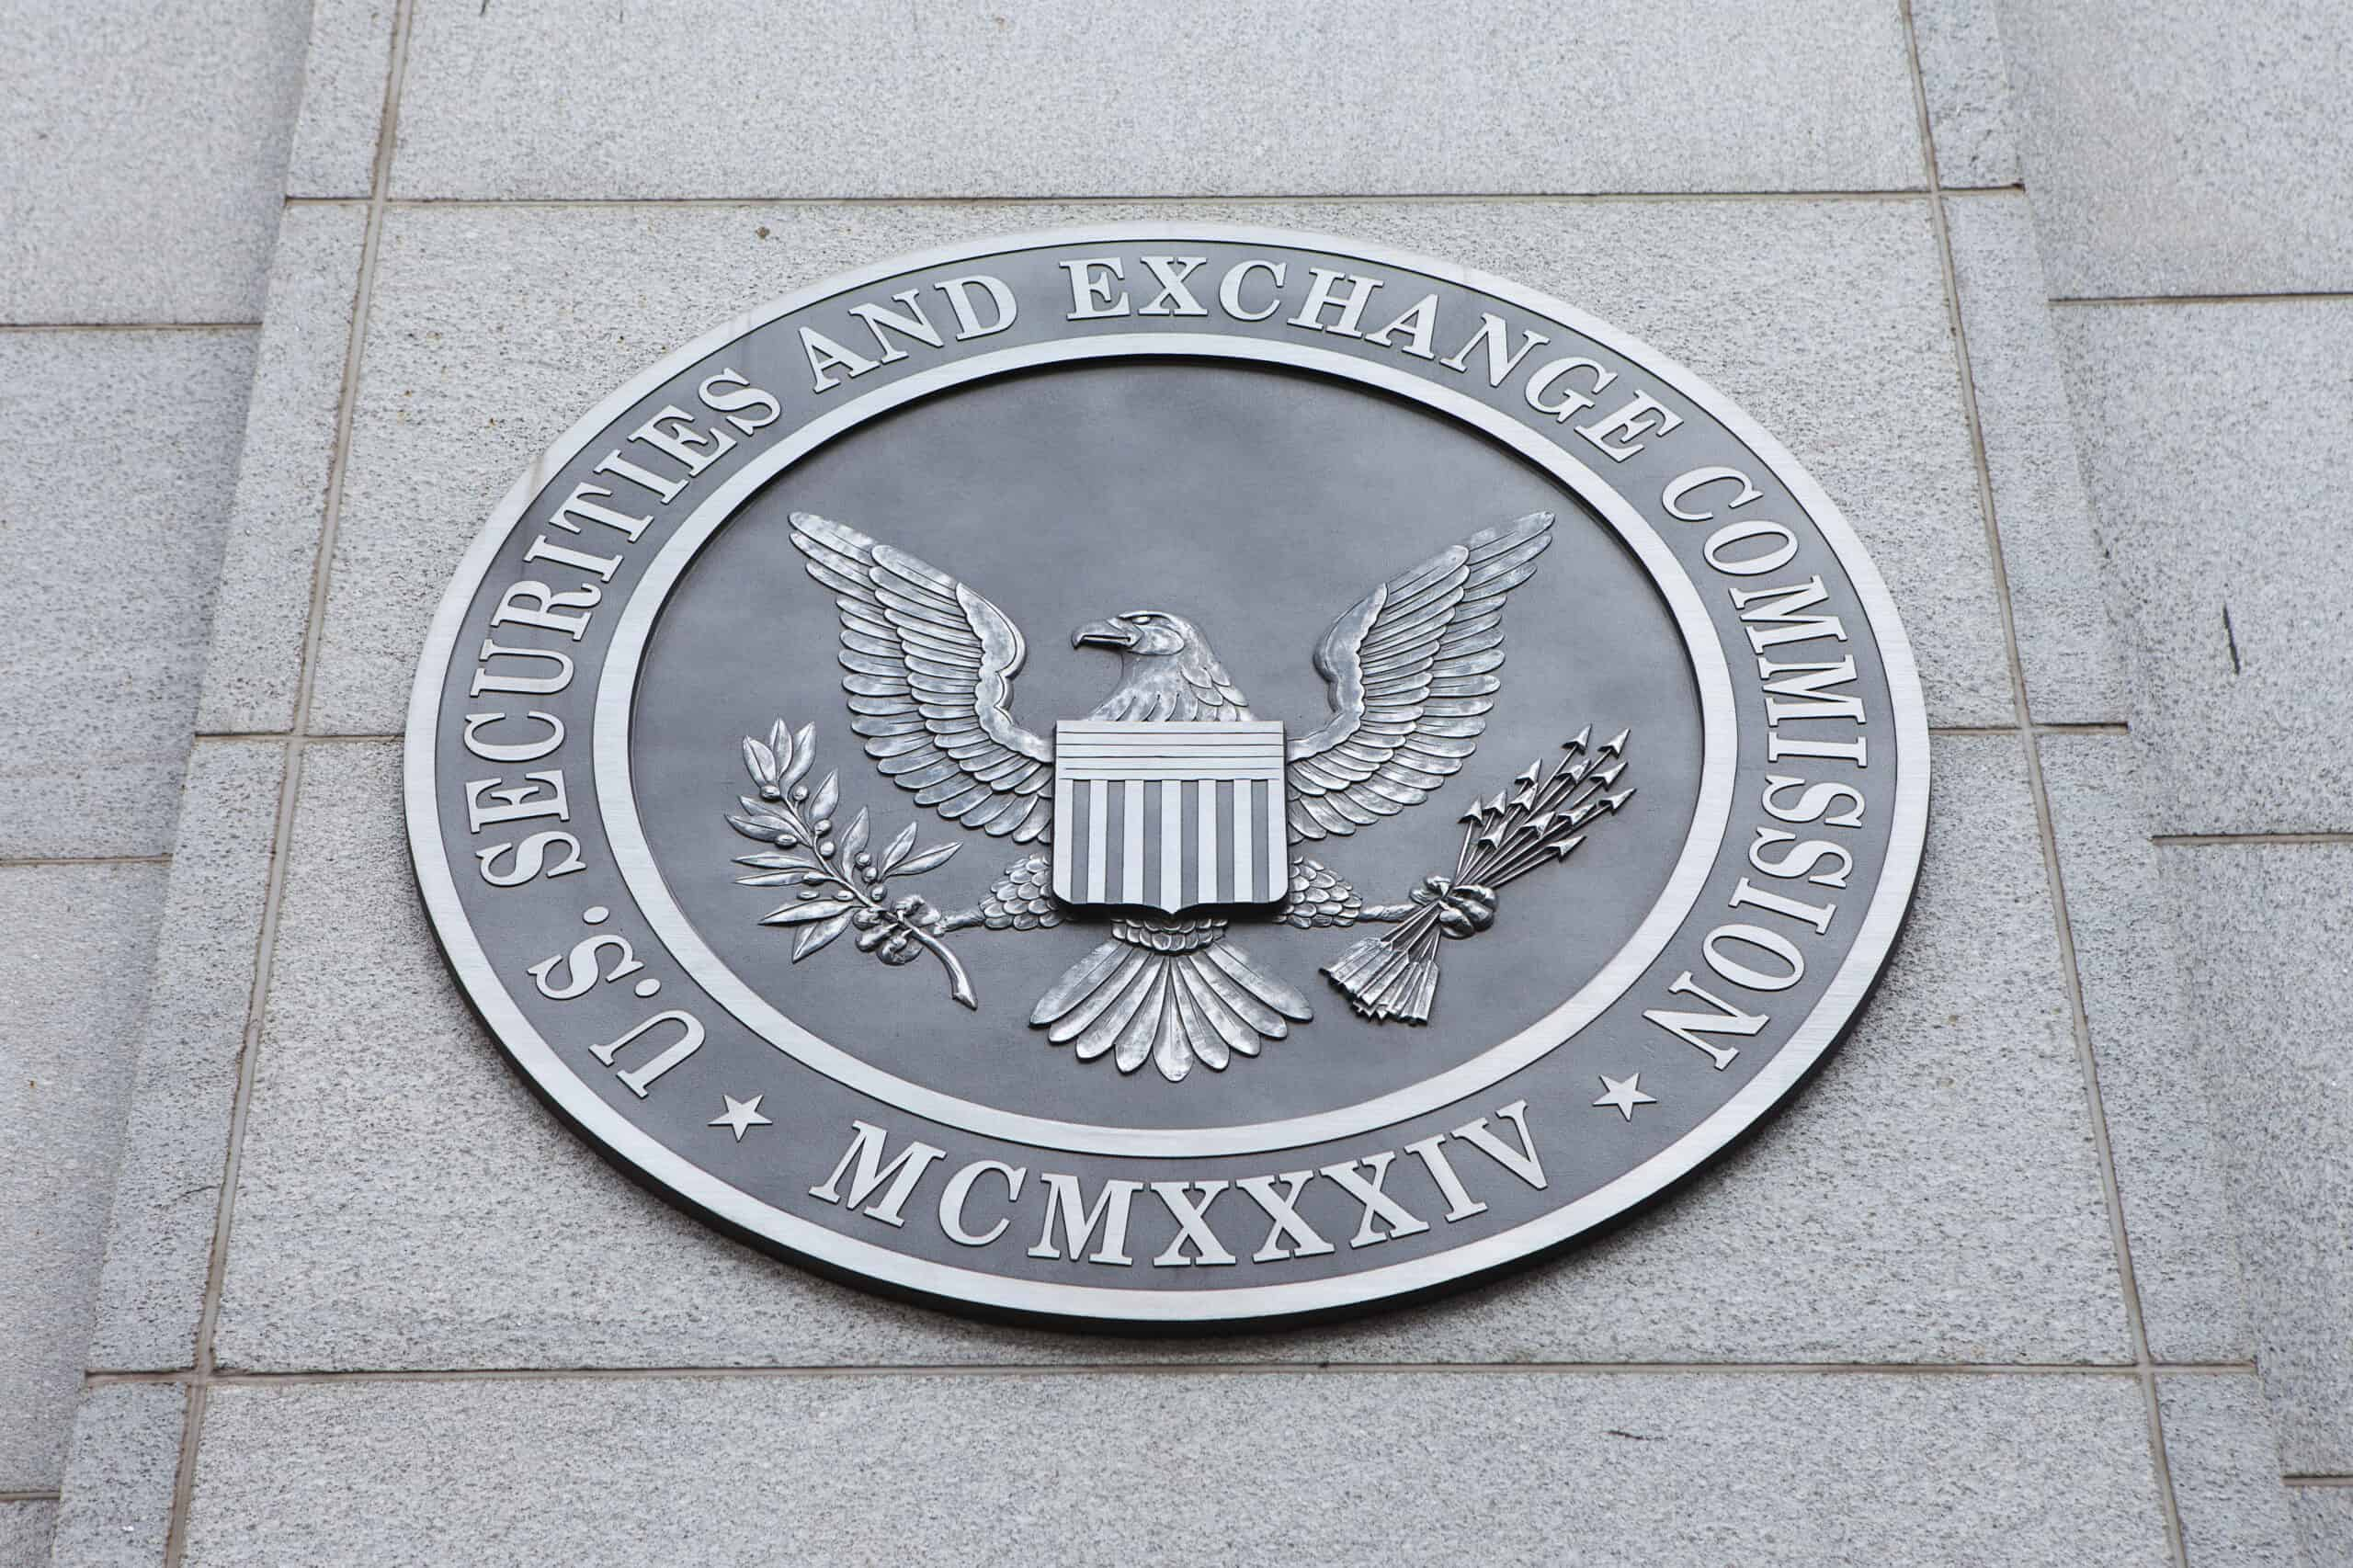 Securities and Exchange Comission (SEC)